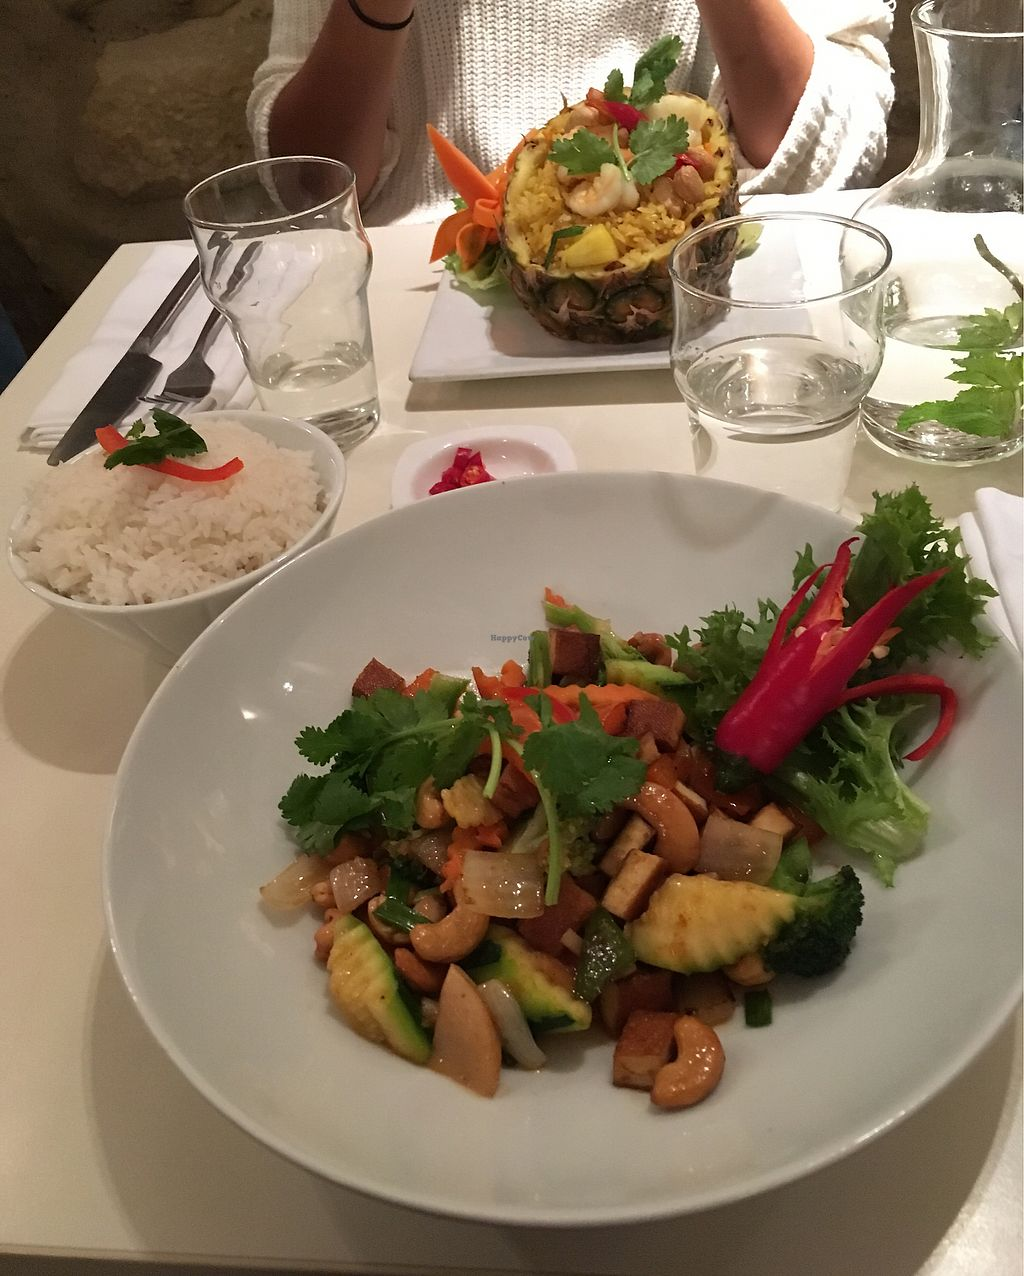 "Photo of Suan Thai  by <a href=""/members/profile/vegandancer96"">vegandancer96</a> <br/>vegetables with tofu and side of rice <br/> November 27, 2017  - <a href='/contact/abuse/image/92508/329874'>Report</a>"